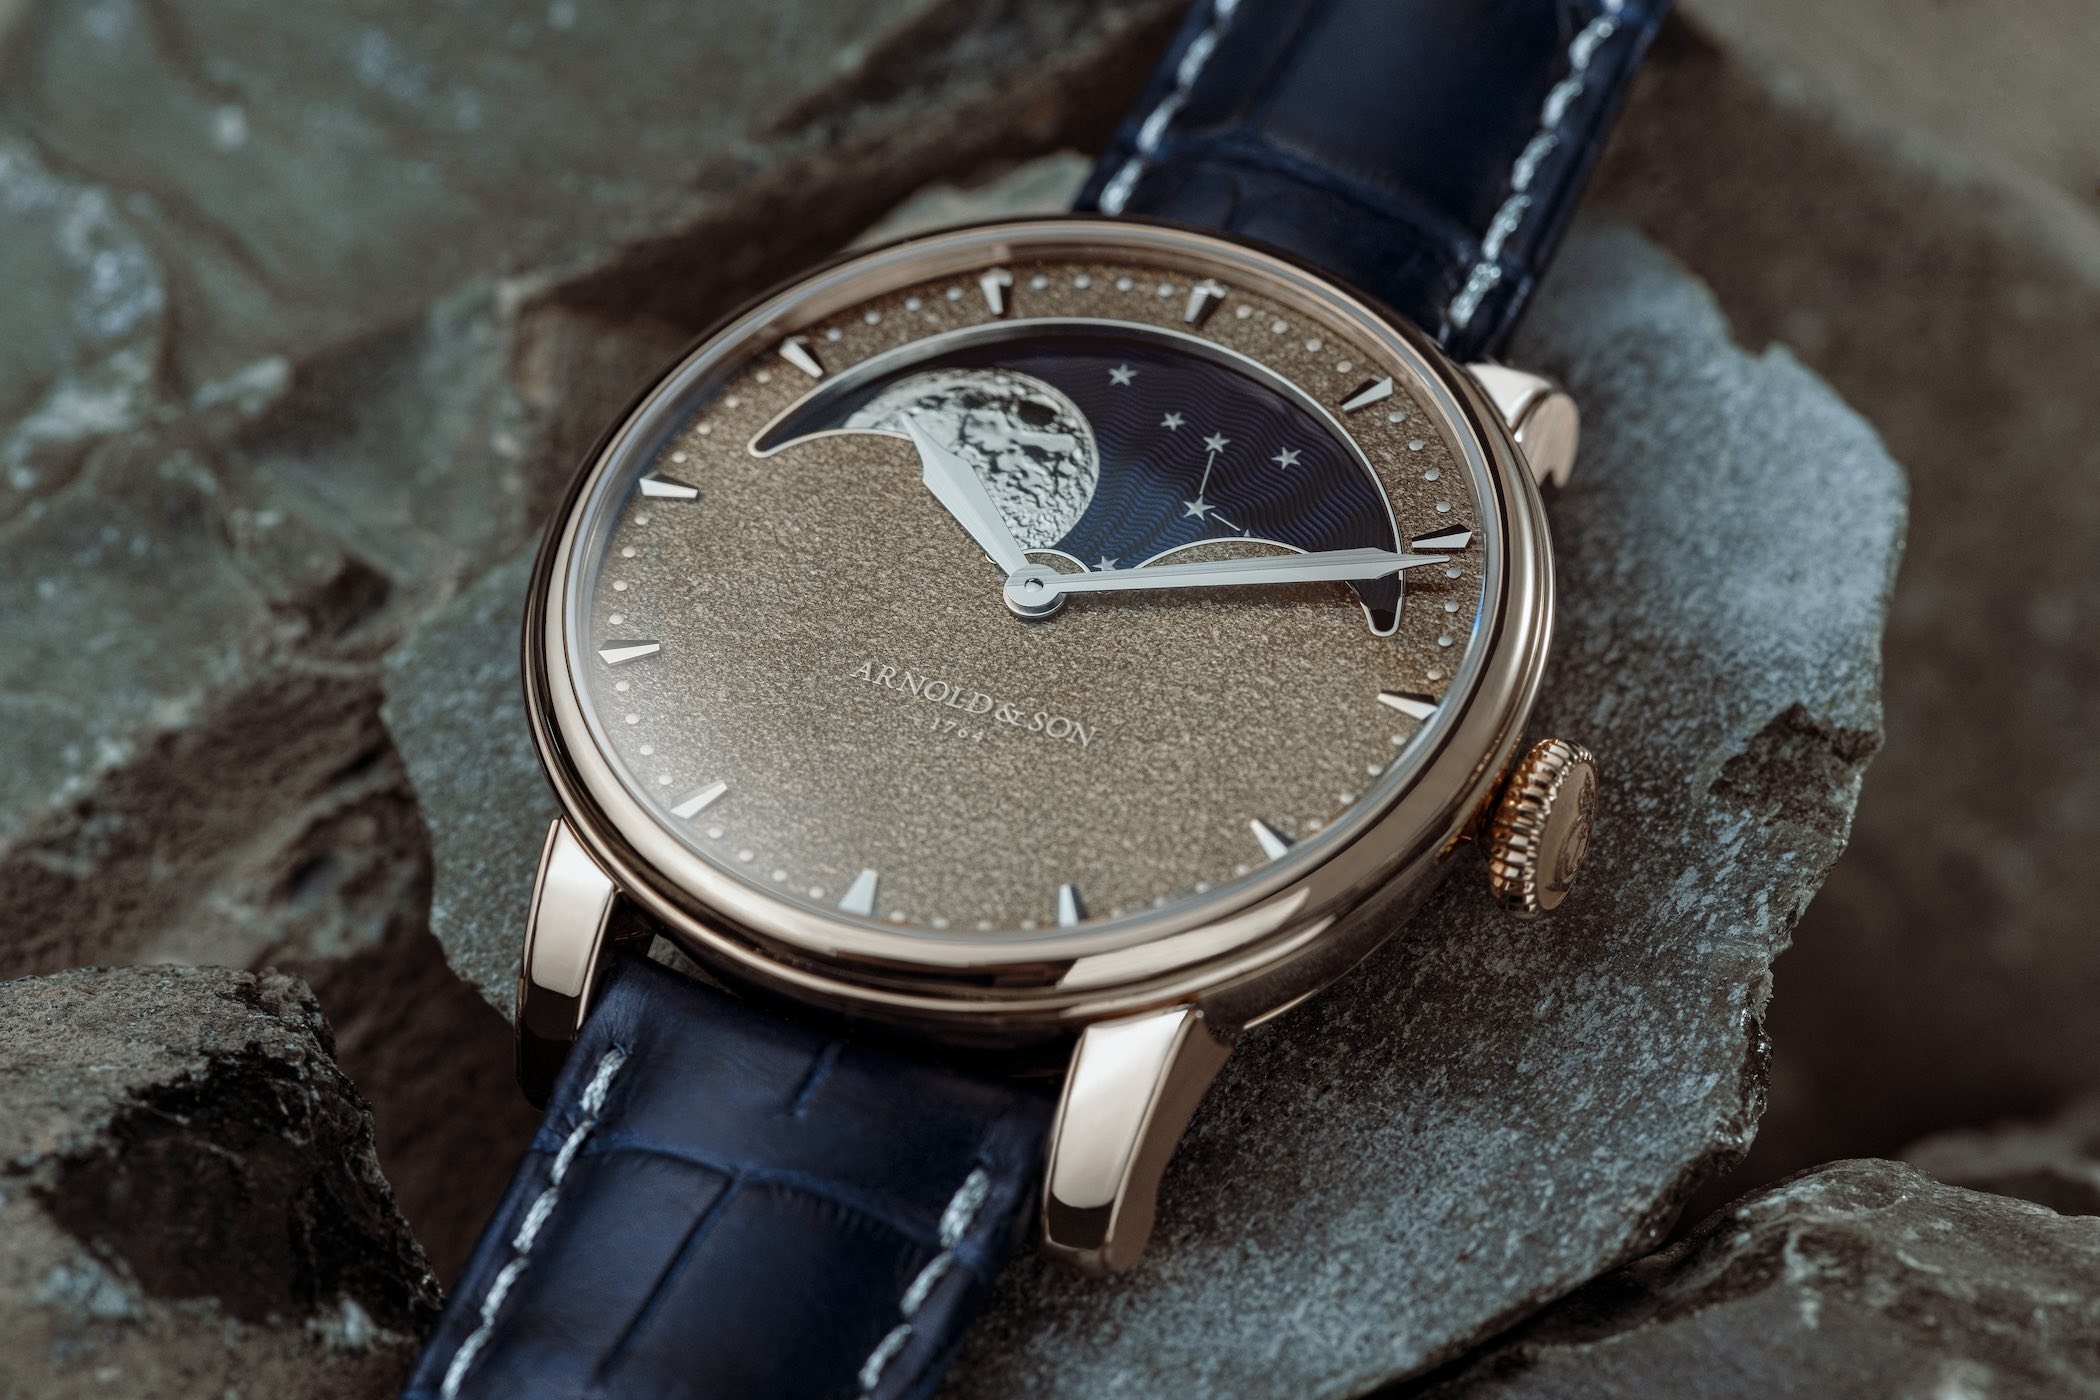 Introducing - Arnold & Son Perpetual Moon Obsidian (Specs & Price)